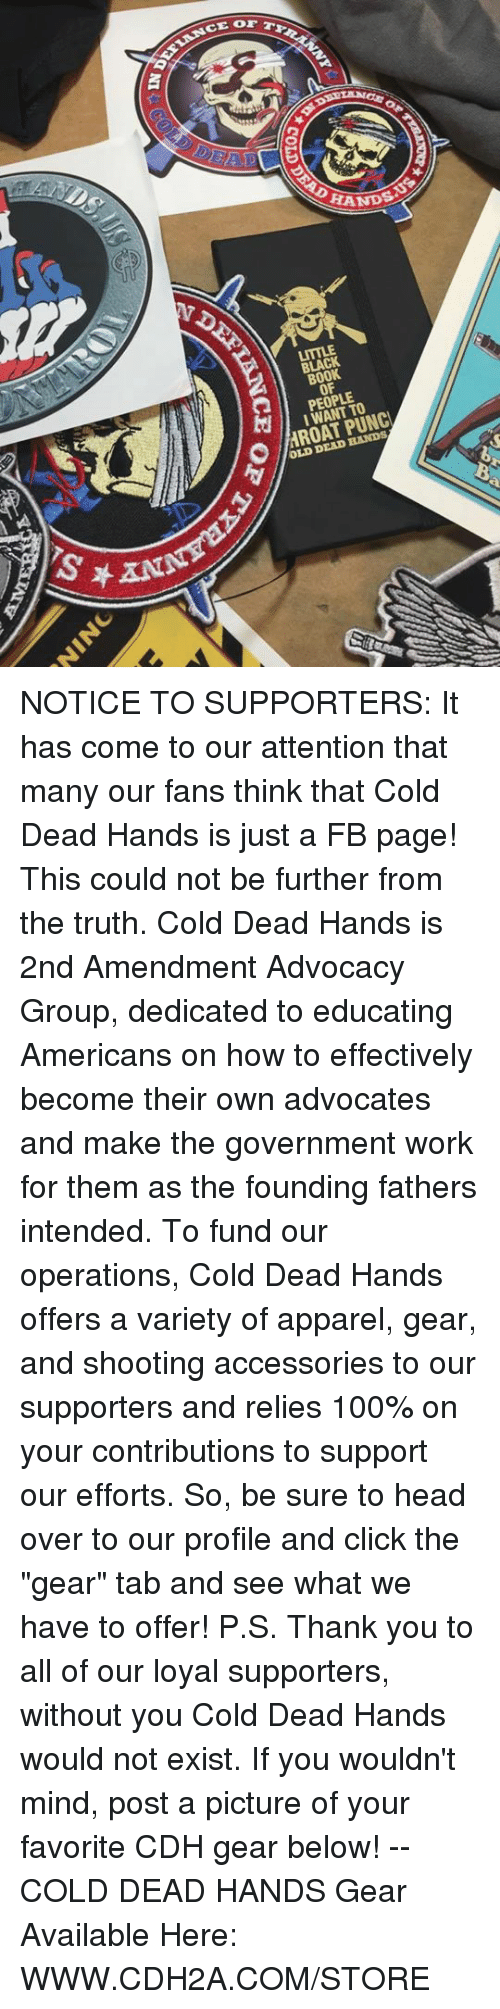 """Black Book: CE OF  HANDS  BLACK  BOOK  OF  PEOPLE  I WANT TO  OLD DEAD HANDS NOTICE TO SUPPORTERS:  It has come to our attention that many our fans think that Cold Dead Hands is just a FB page! This could not be further from the truth.   Cold Dead Hands is 2nd Amendment Advocacy Group, dedicated to educating Americans on how to effectively become their own advocates and make the government work for them as the founding fathers intended.  To fund our operations, Cold Dead Hands offers a variety of apparel, gear, and shooting accessories to our supporters and relies 100% on your contributions to support our efforts.  So, be sure to head over to our profile and click the """"gear"""" tab and see what we have to offer!  P.S. Thank you to all of our loyal supporters, without you Cold Dead Hands would not exist. If you wouldn't mind, post a picture of your favorite CDH gear below!  -- COLD DEAD HANDS Gear Available Here:  WWW.CDH2A.COM/STORE"""